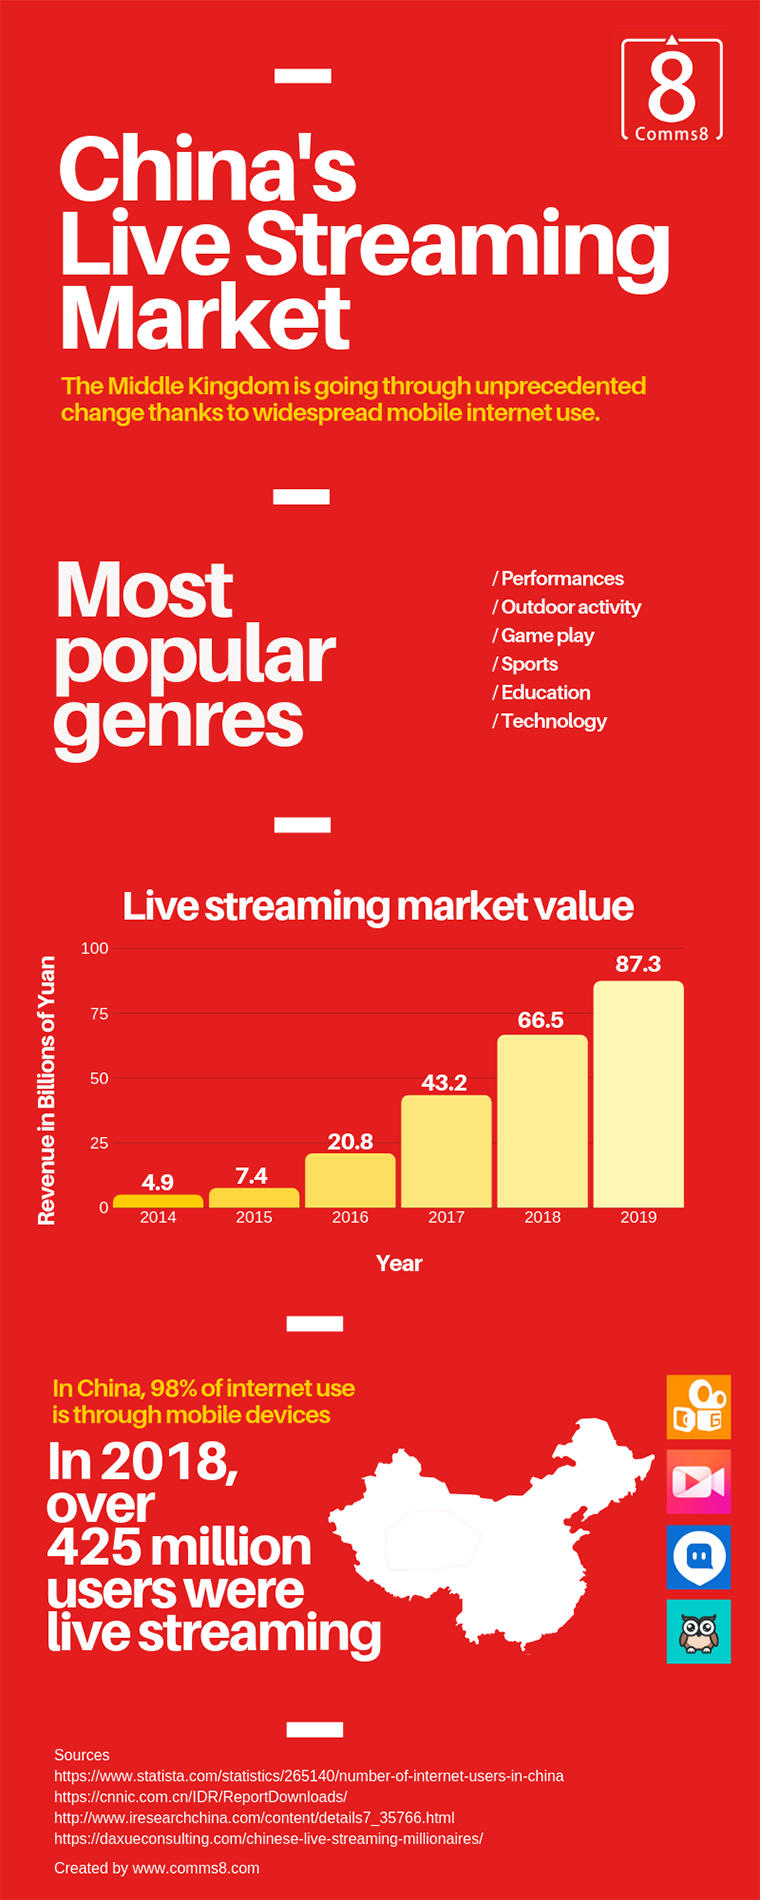 How can brands navigate China's live streaming market? | Vuelio